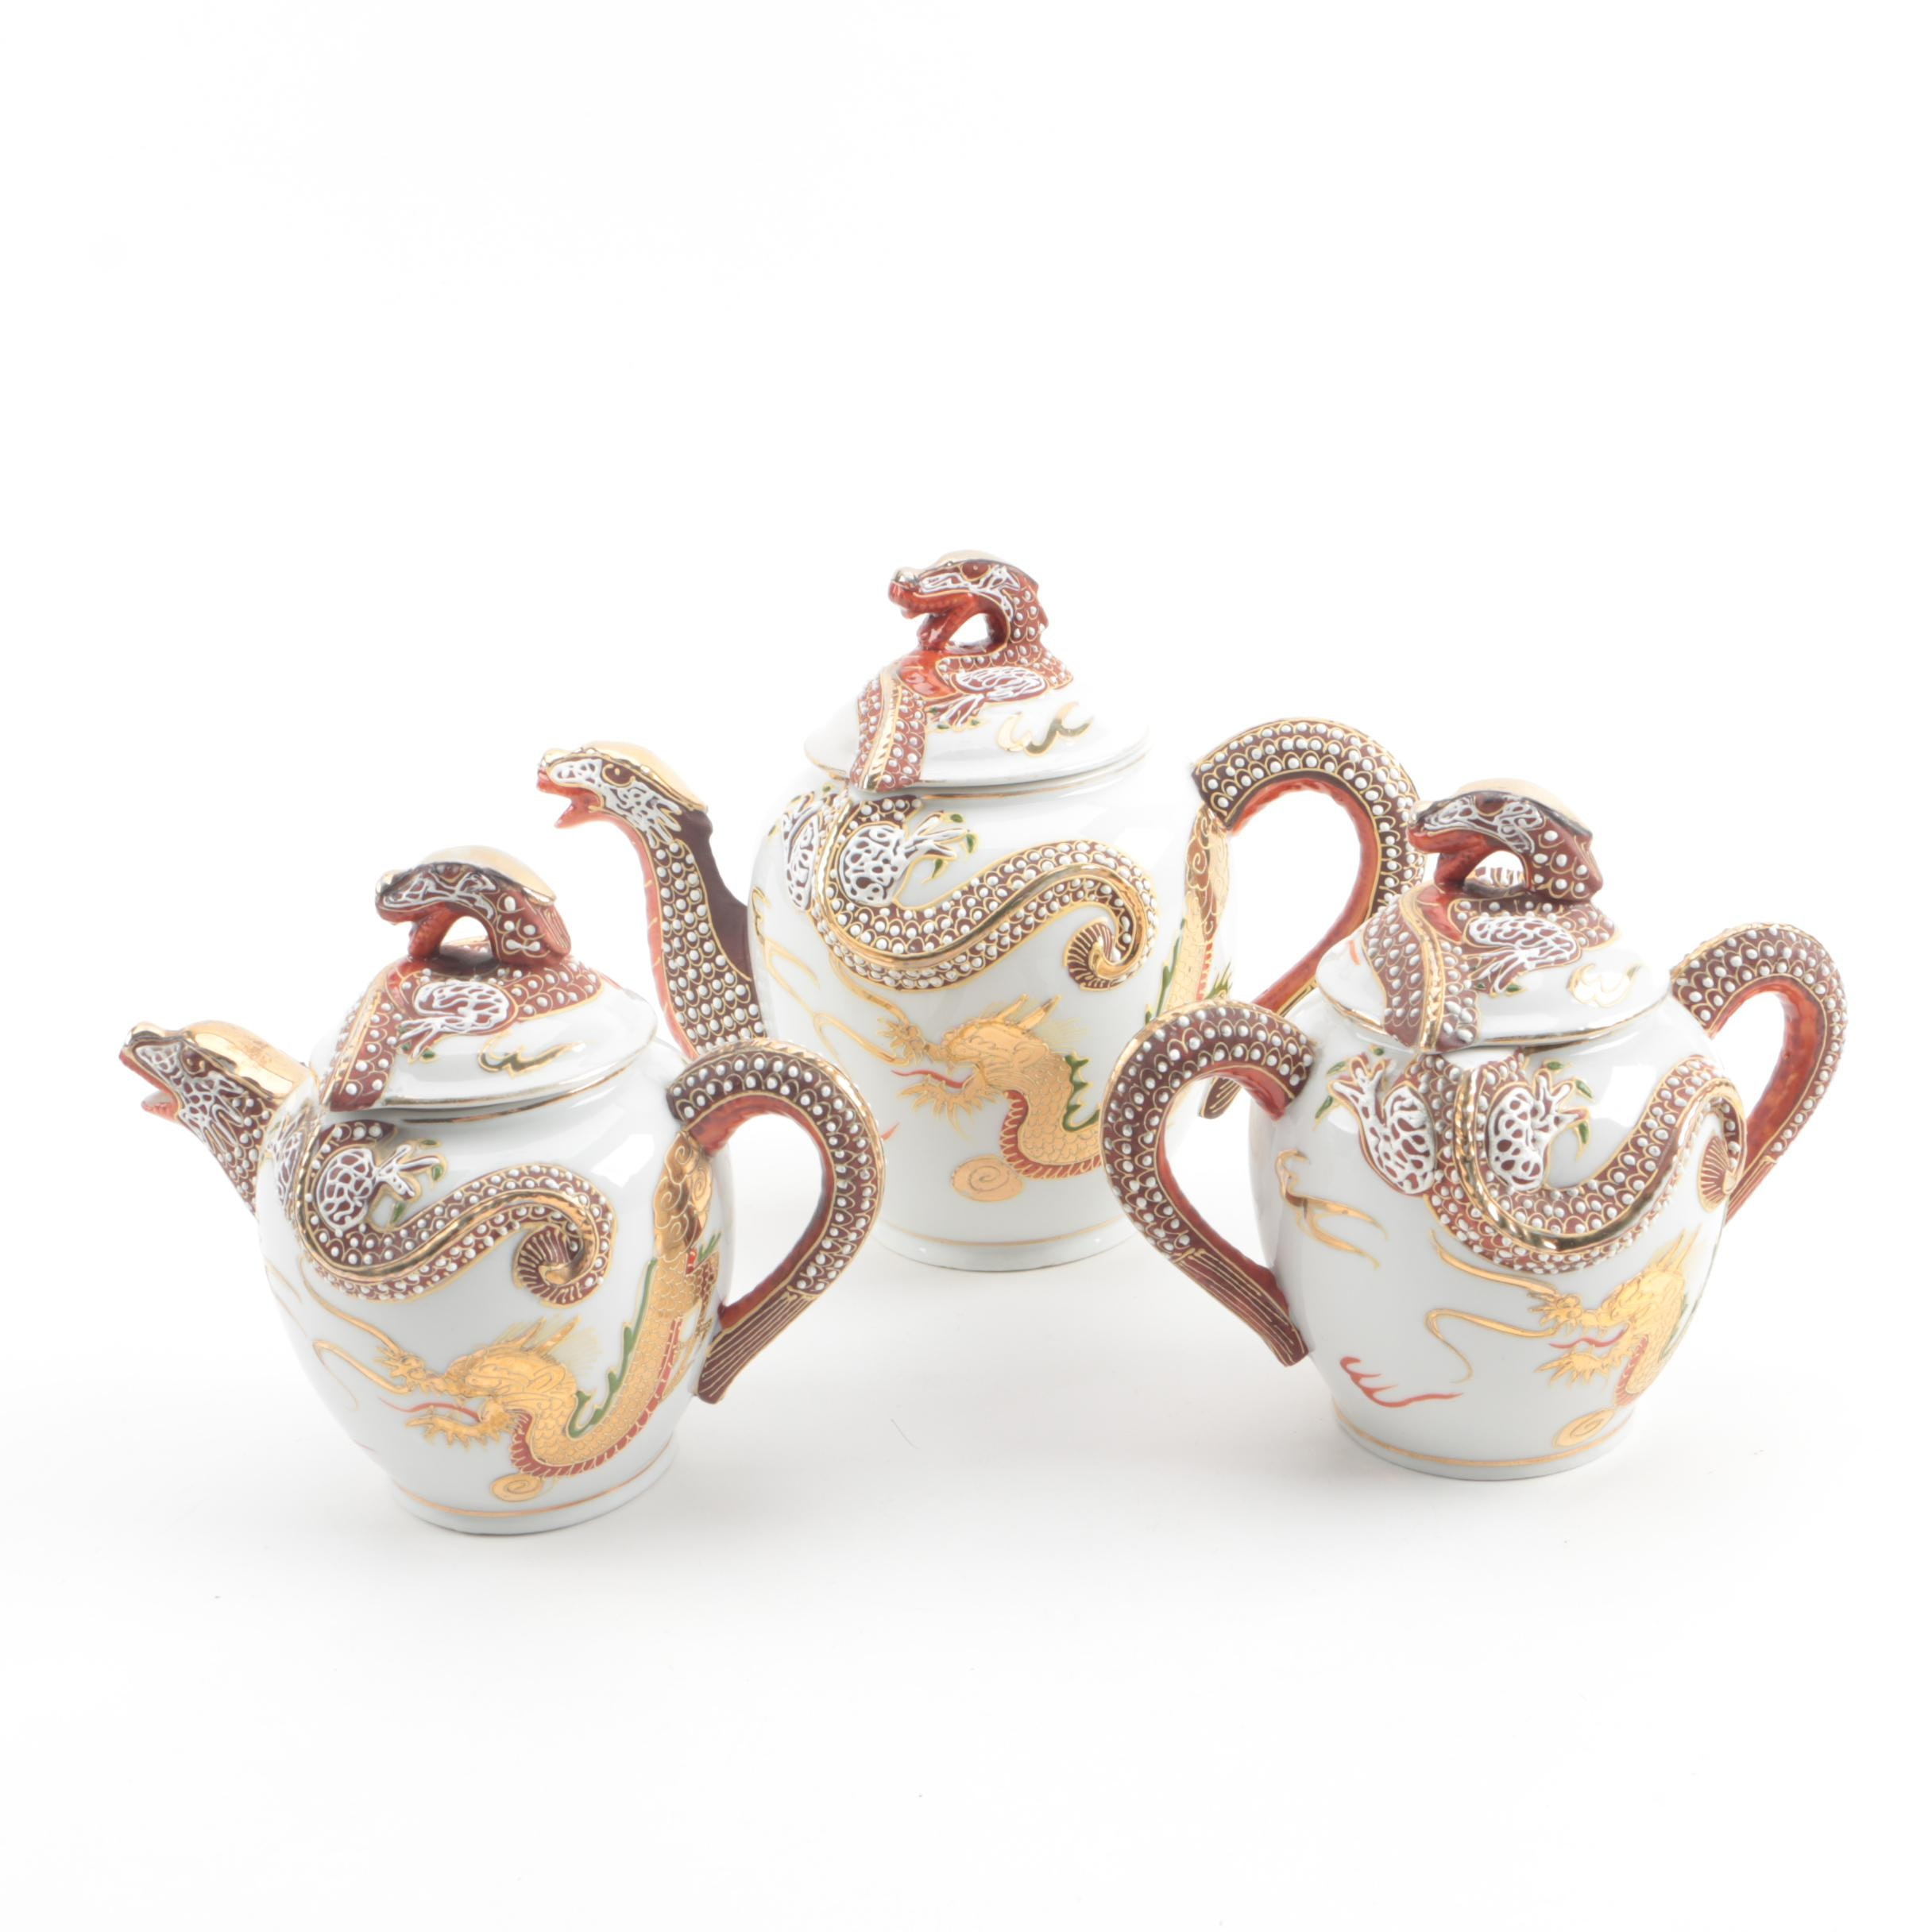 Japanese Dragon Ware Moriage Porcelain Teapot, Sugar Bowl and Creamer